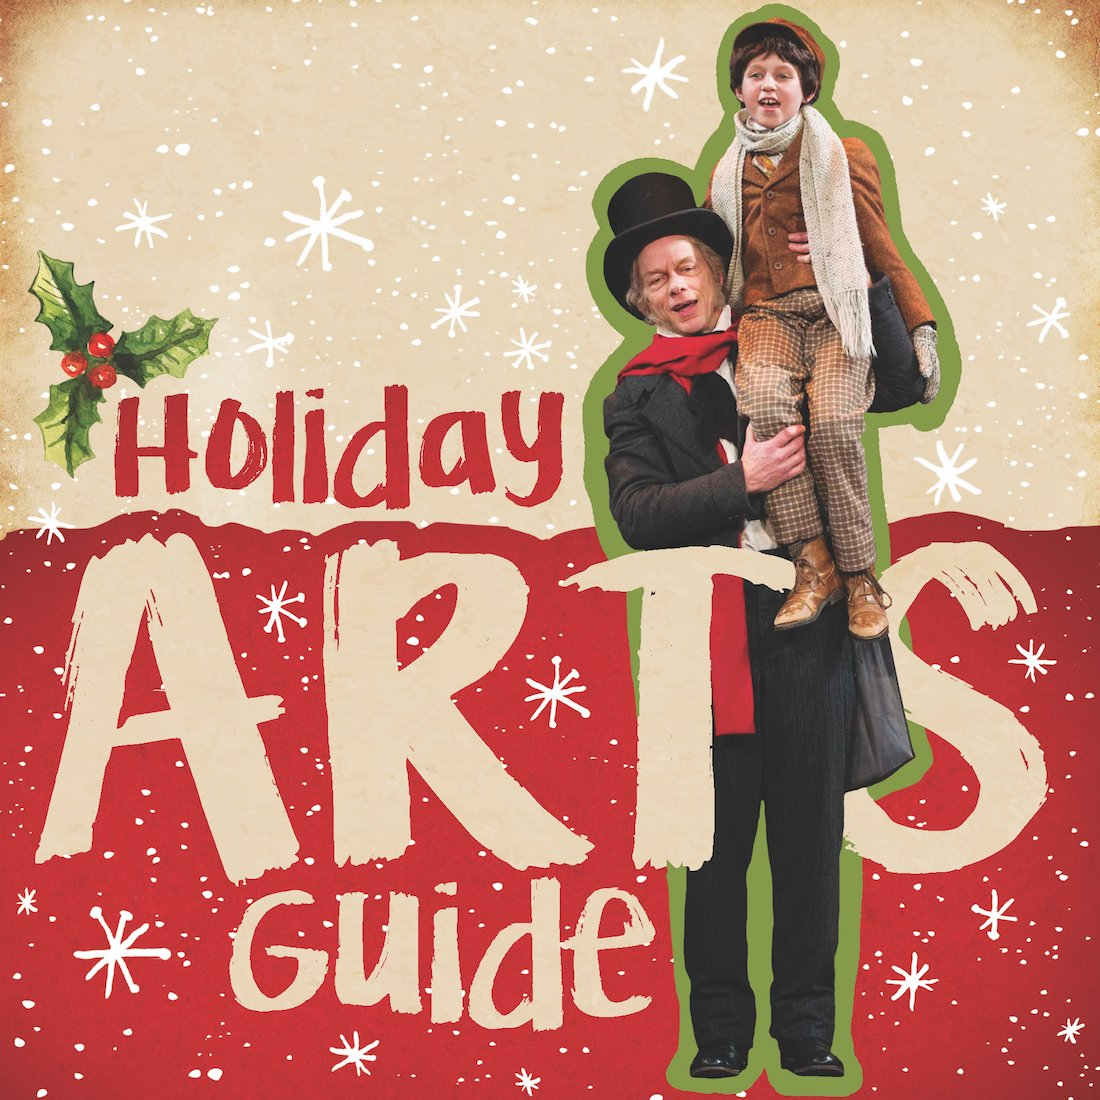 Holiday Arts Guide 2018: A Look Ahead at the Shows of the Season